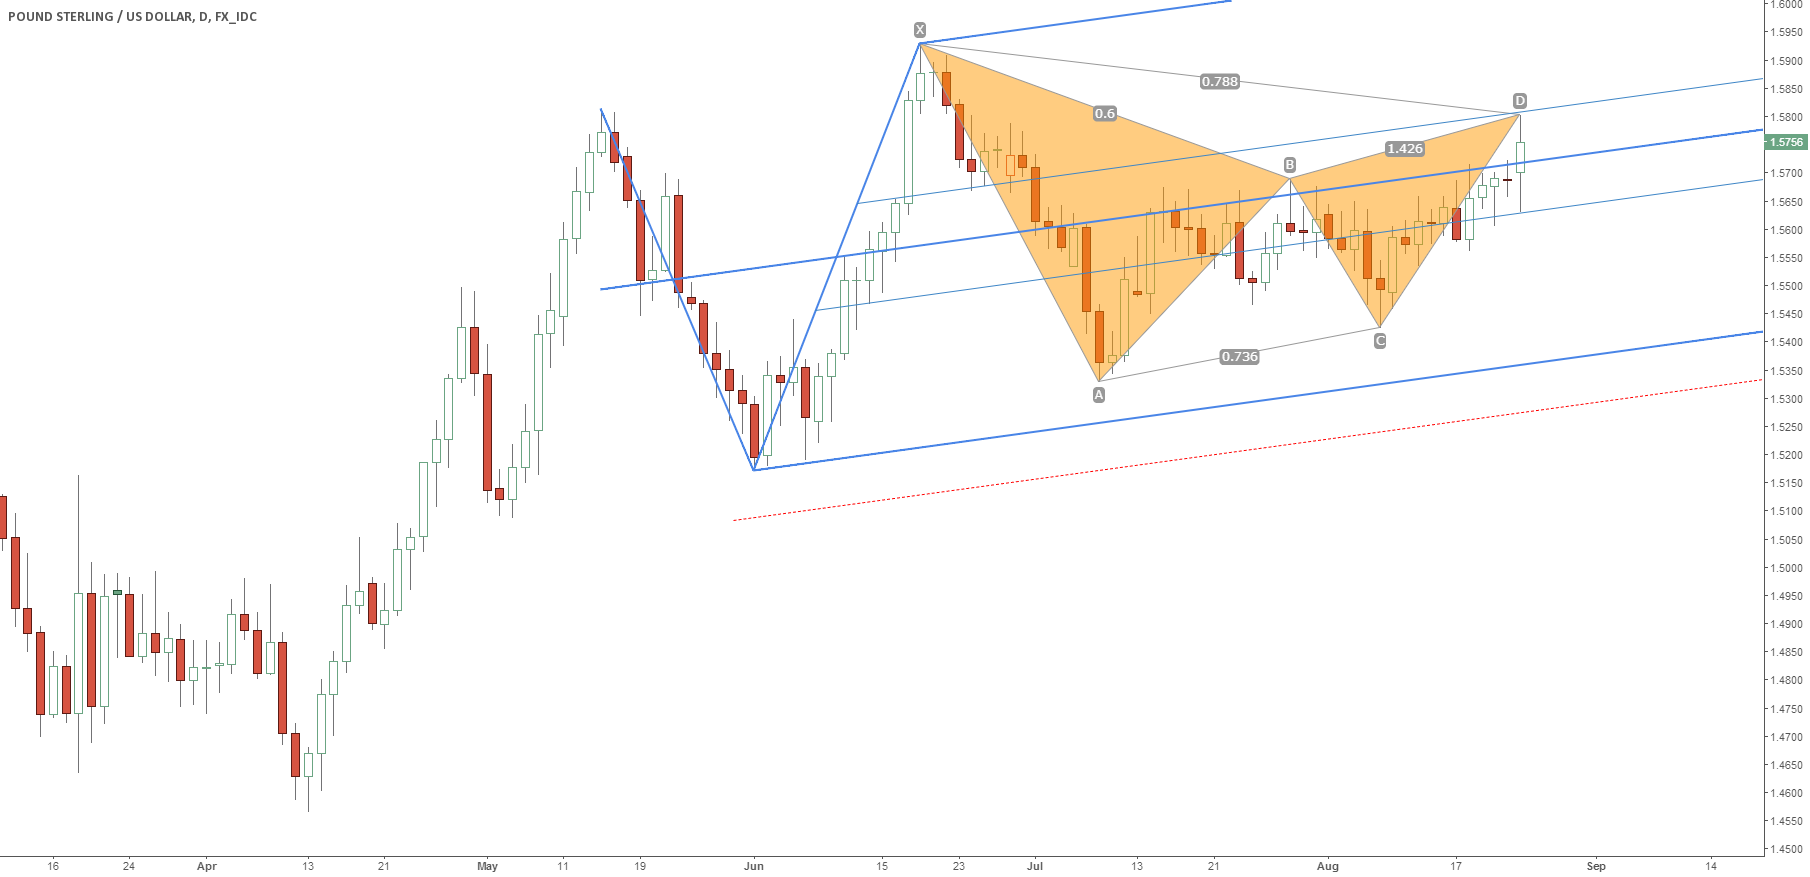 GBP/USD: Bearish Gartley Setup